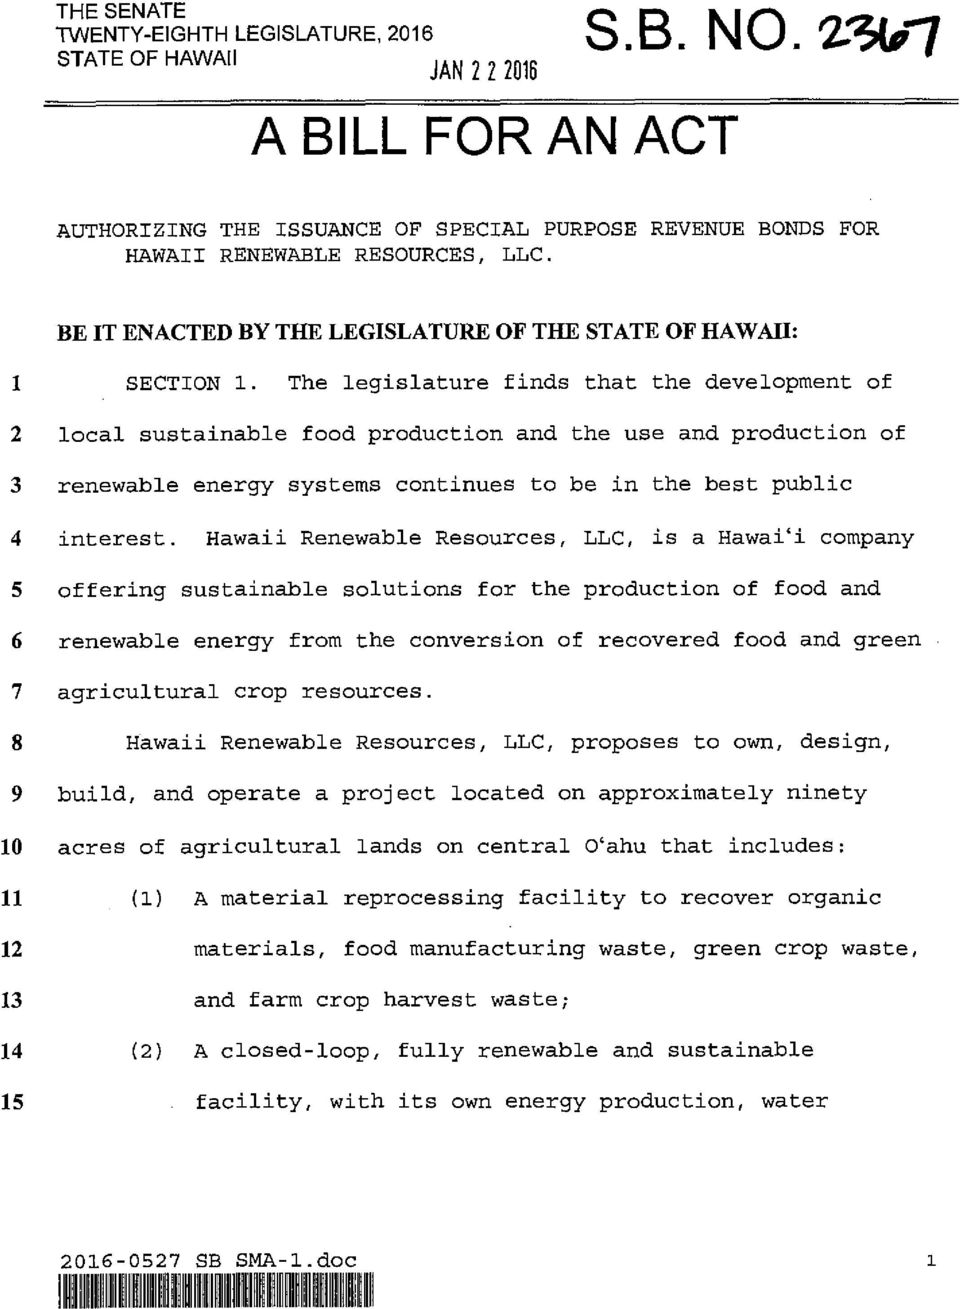 The legislature finds that the development of local sustainable food production and the use and production of renewable energy systems continues to be in the best public interest.